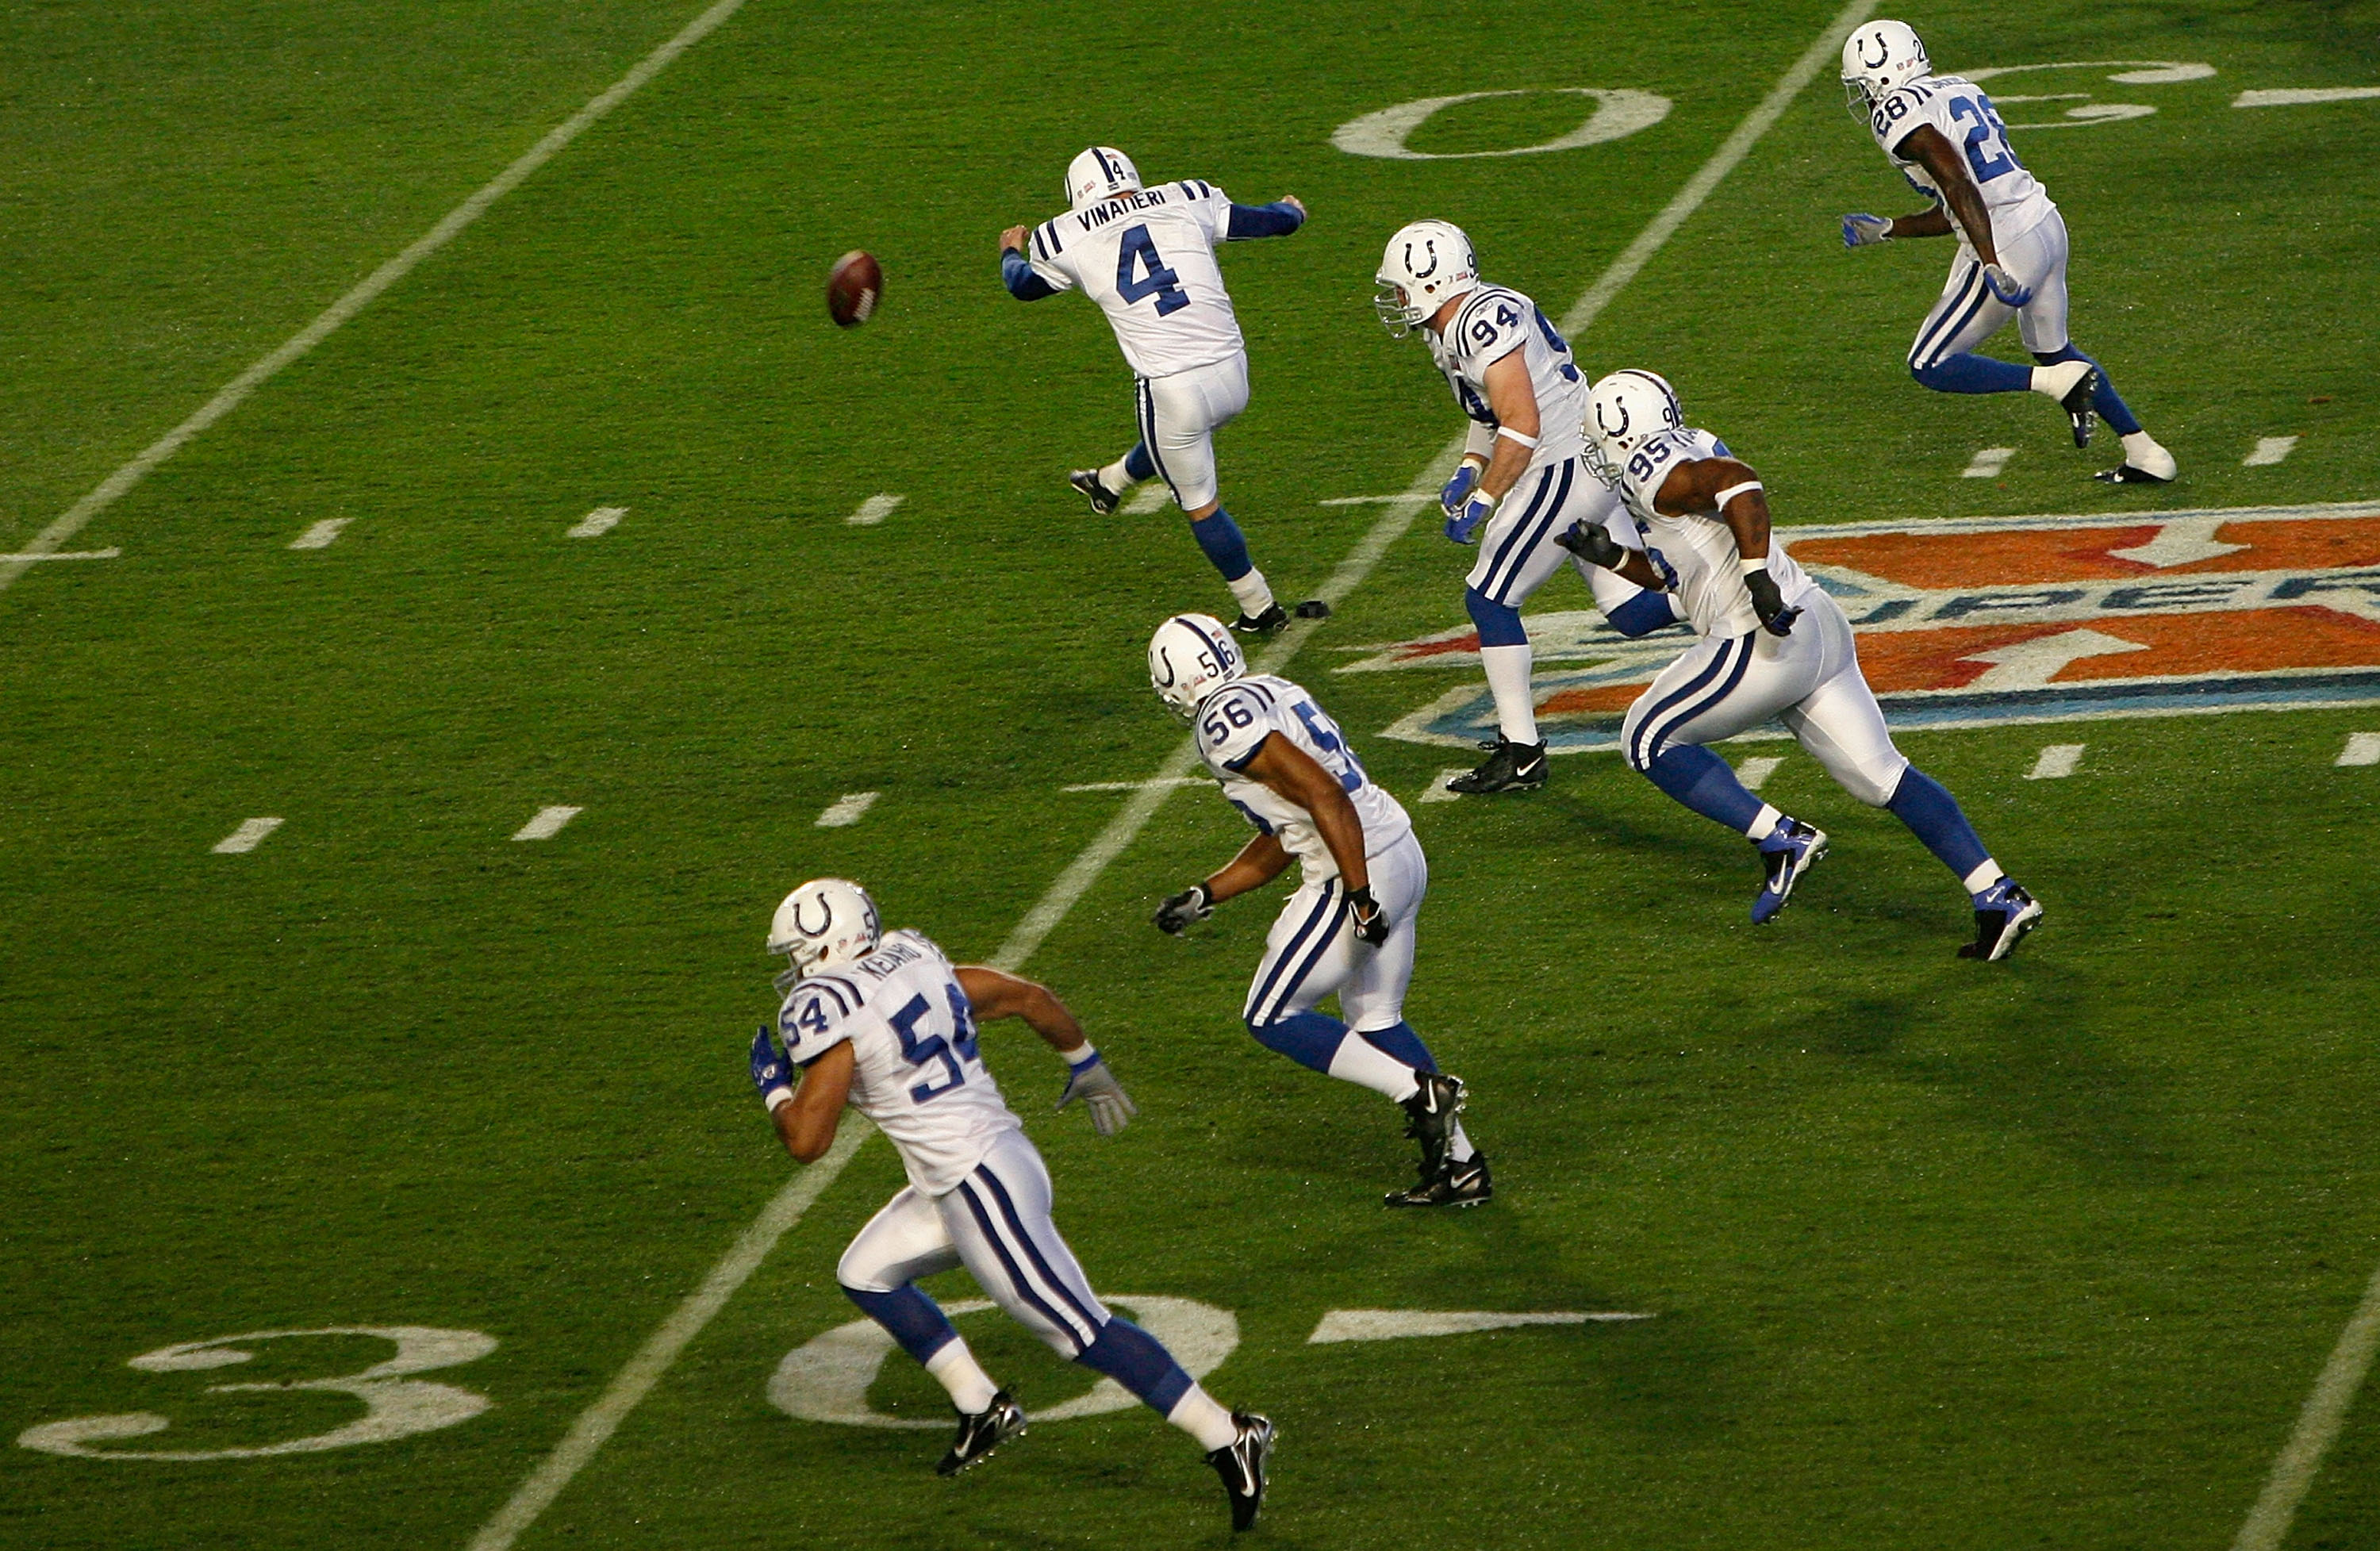 MIAMI GARDENS, FL - FEBRUARY 04:  Adam Vinatieri #4 of the Indianapolis Colts kicks the opening kickoff against the Chicago Bears during Super Bowl XLI on February 4, 2007 at Dolphin Stadium in Miami Gardens, Florida. The Colts won 29-17.  (Photo by Eliot